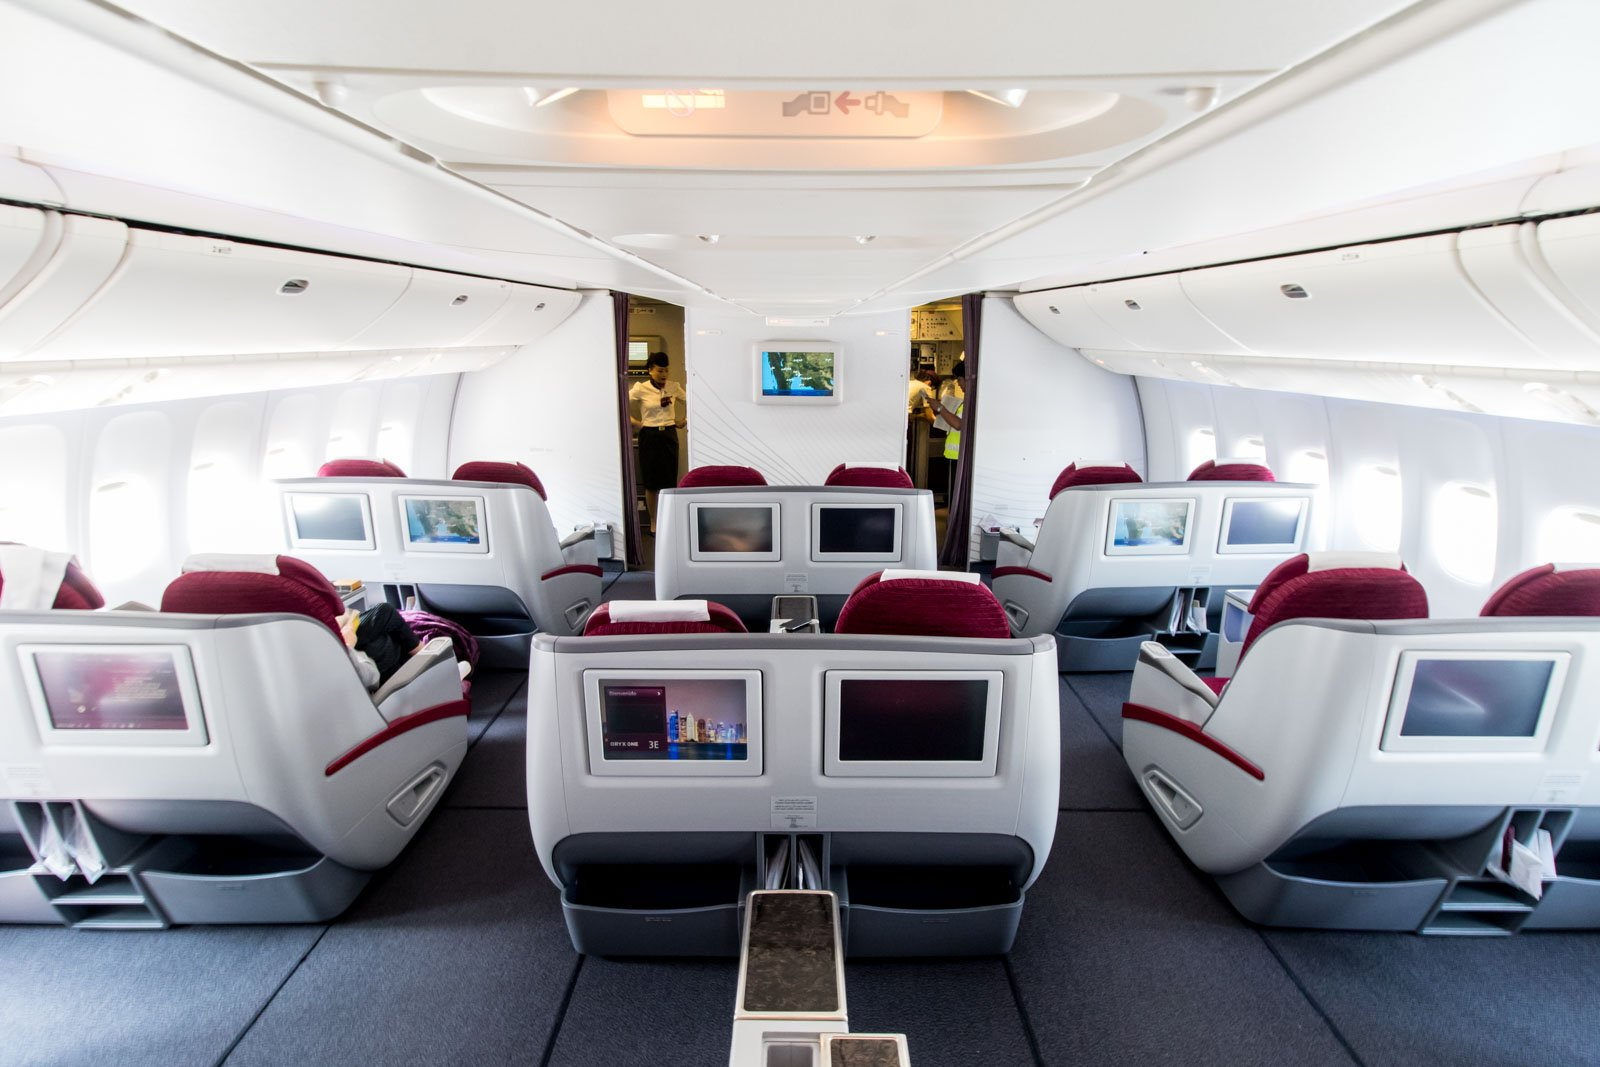 Qatar Airways Boeing 777-300ER Business Class Cabin